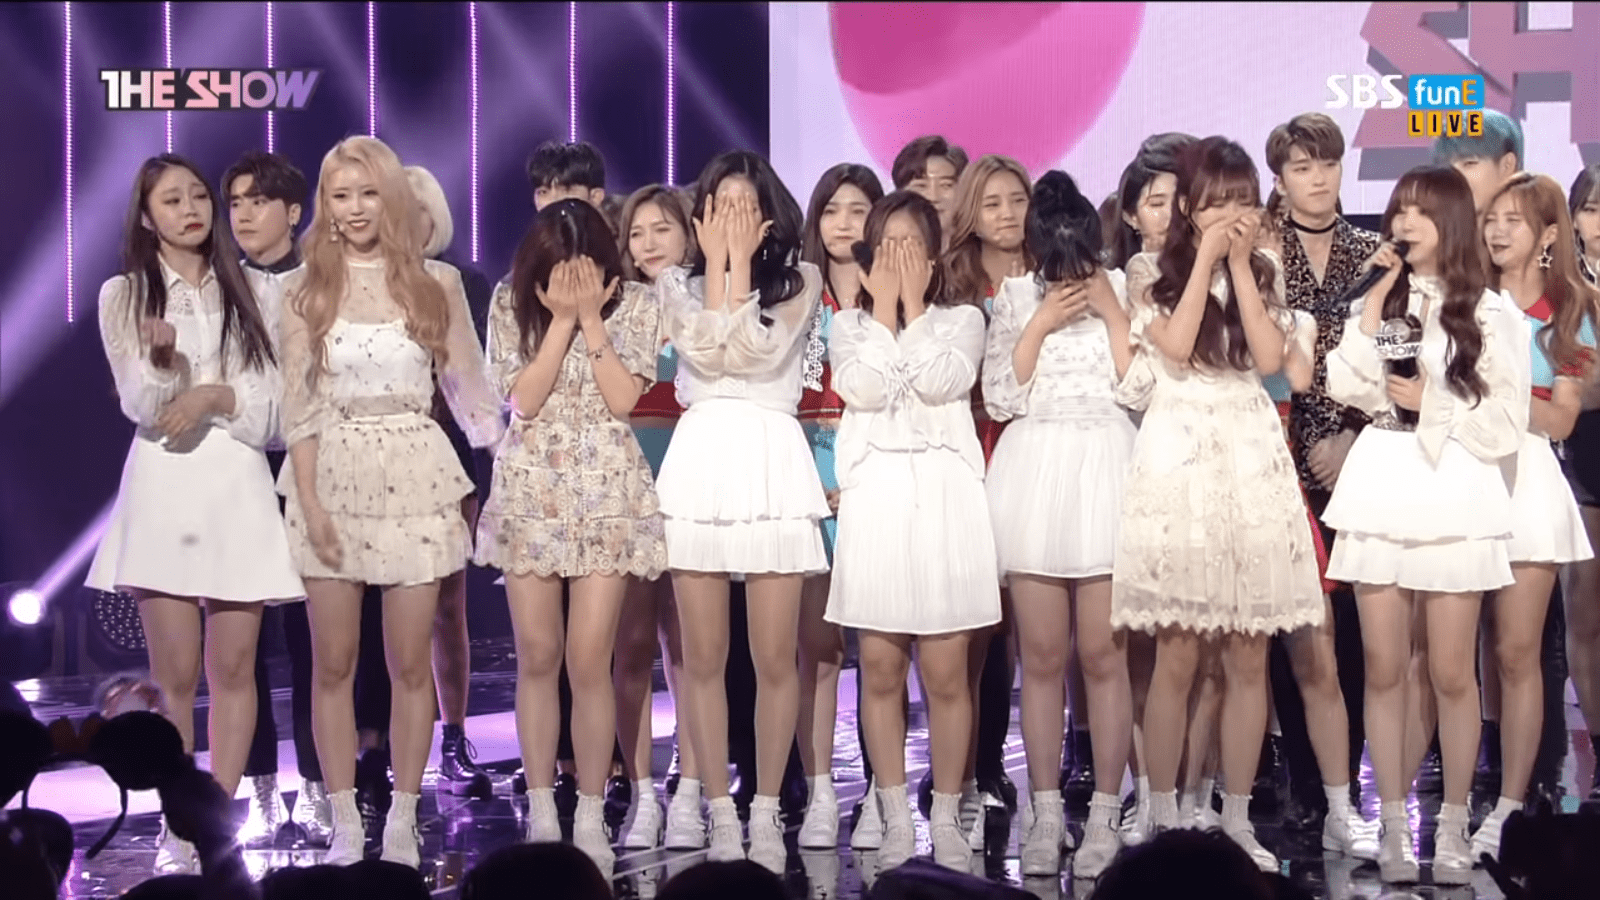 WATCH: Lovelyz Sheds Tears During First Music Show Win Since Debut